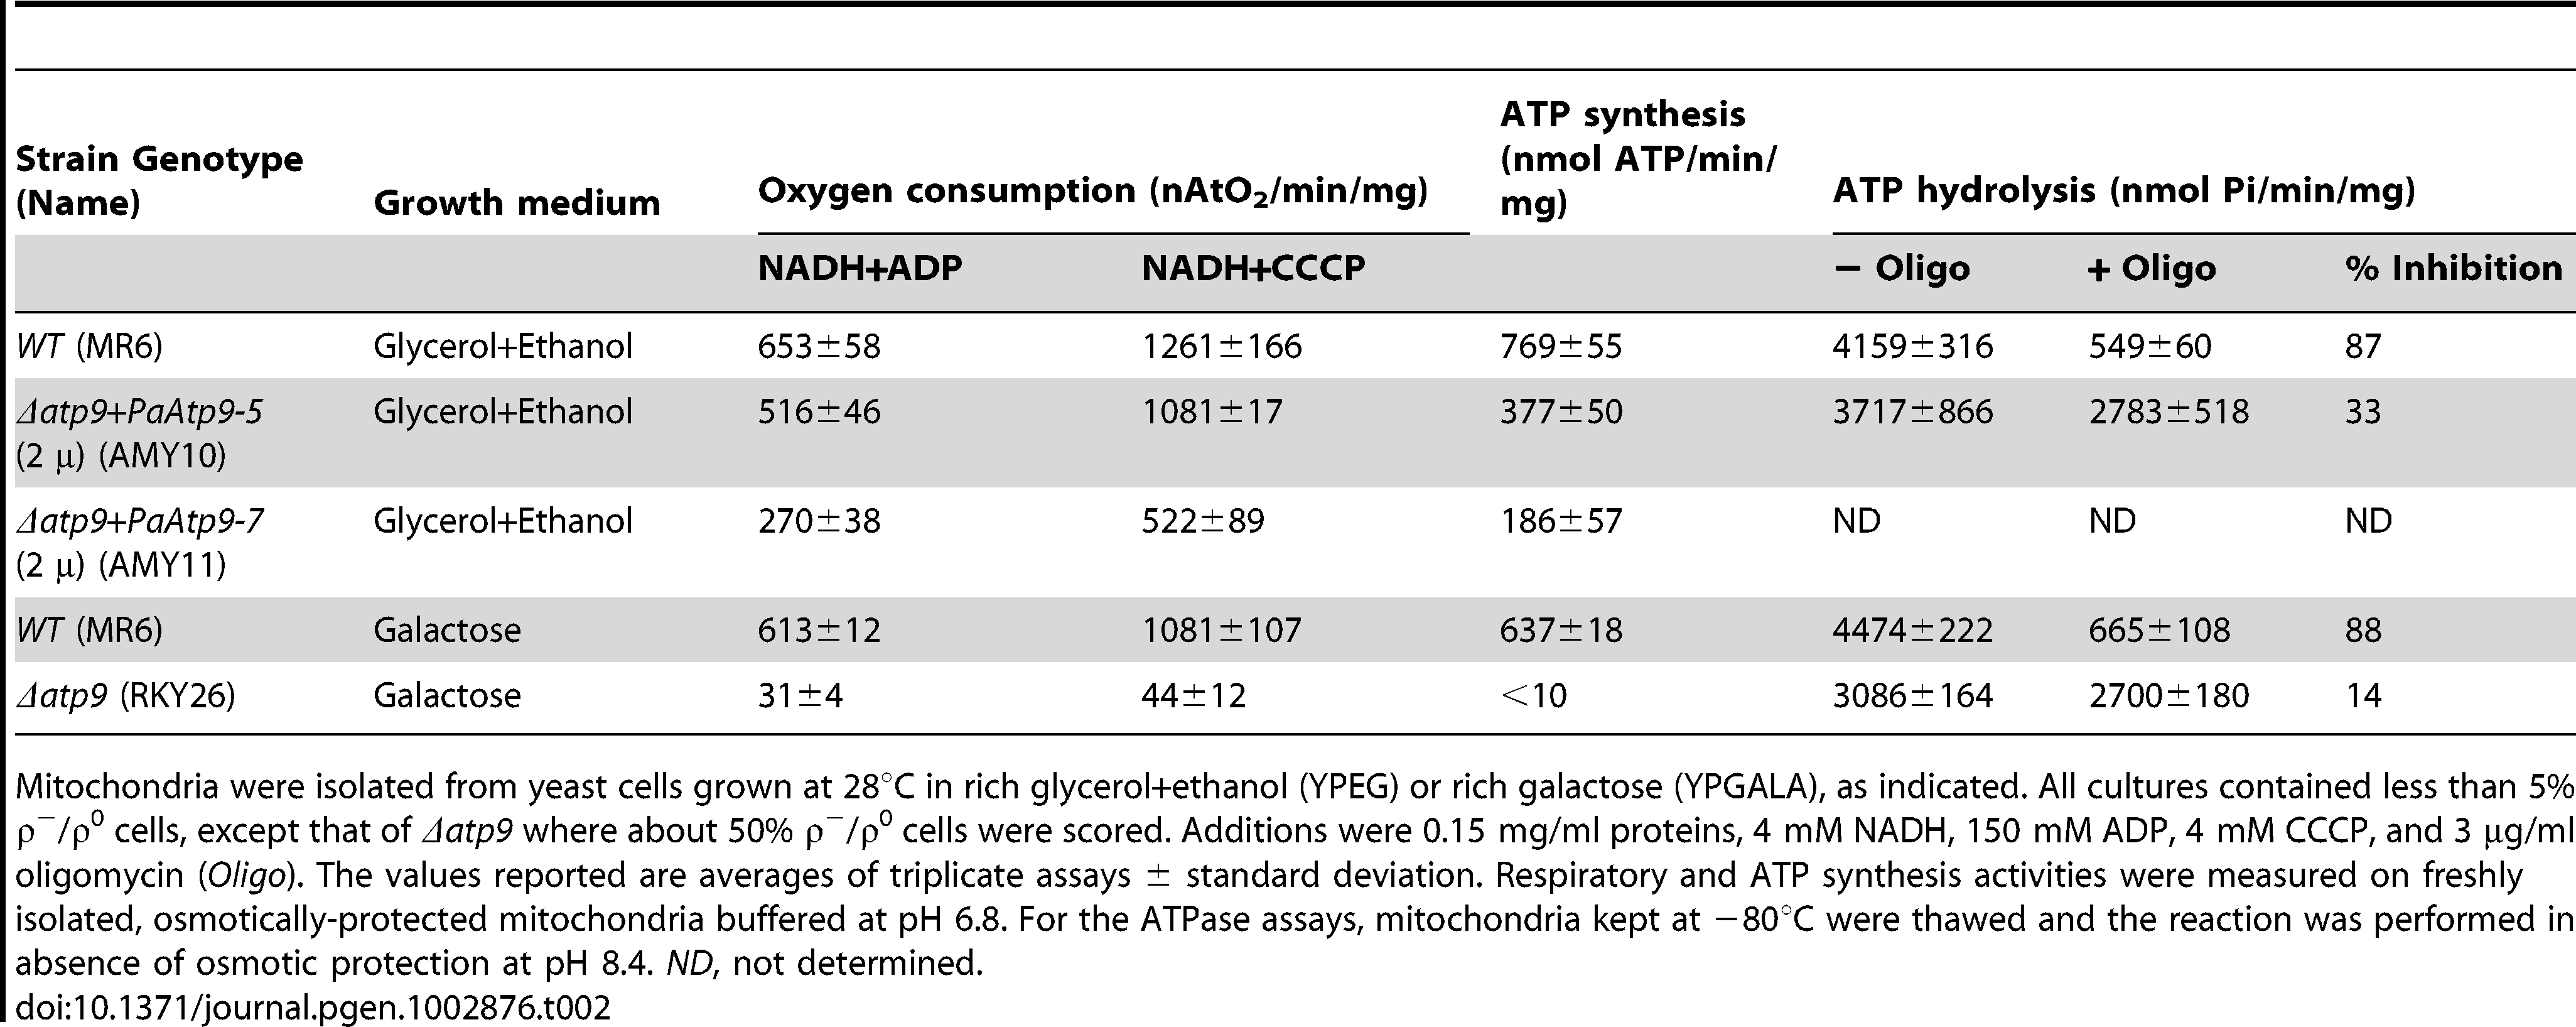 Respiratory and ATP hydrolysis/synthesis activities of mitochondria.